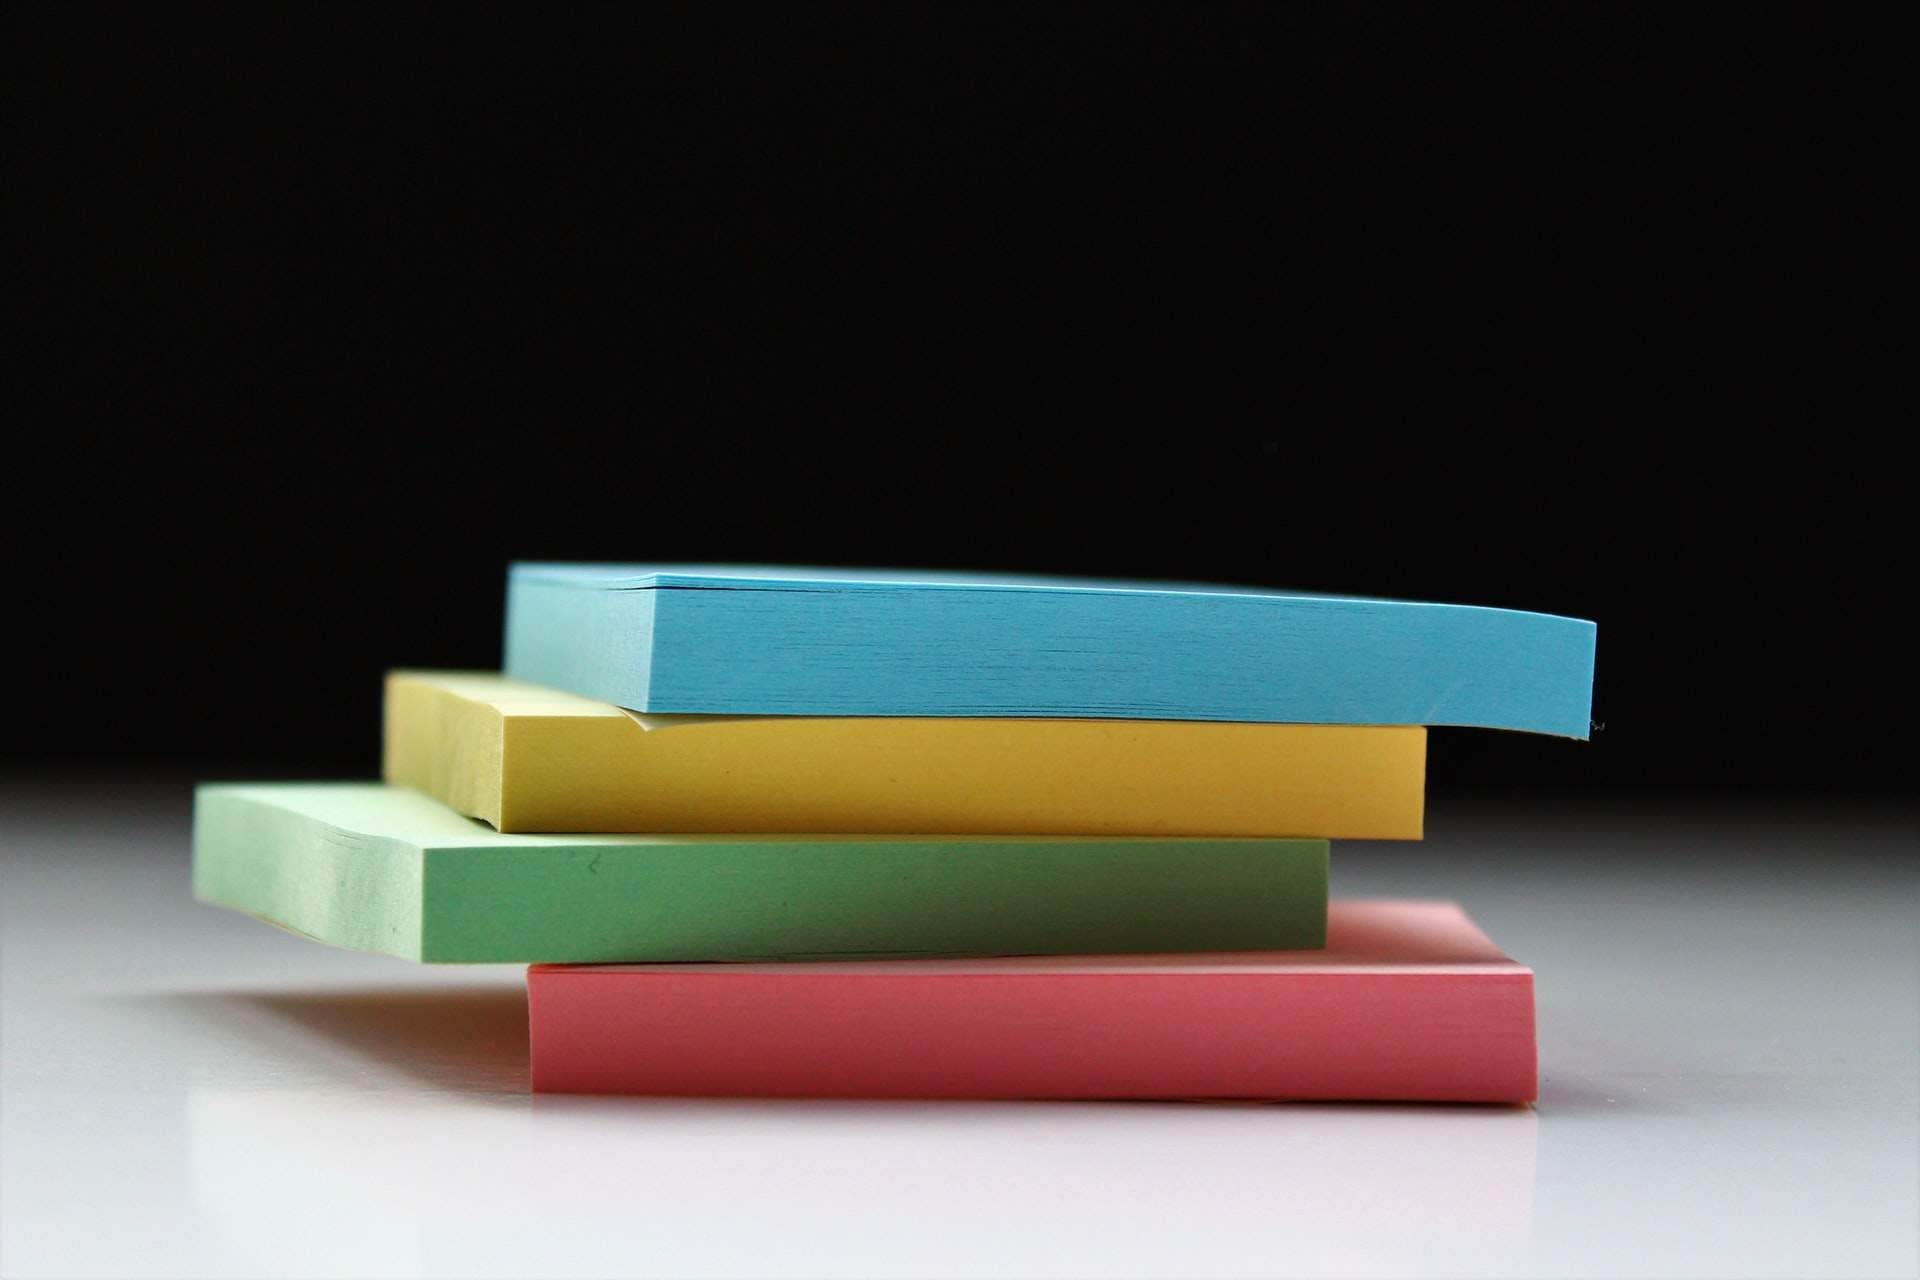 How to choose the right journal for your paper